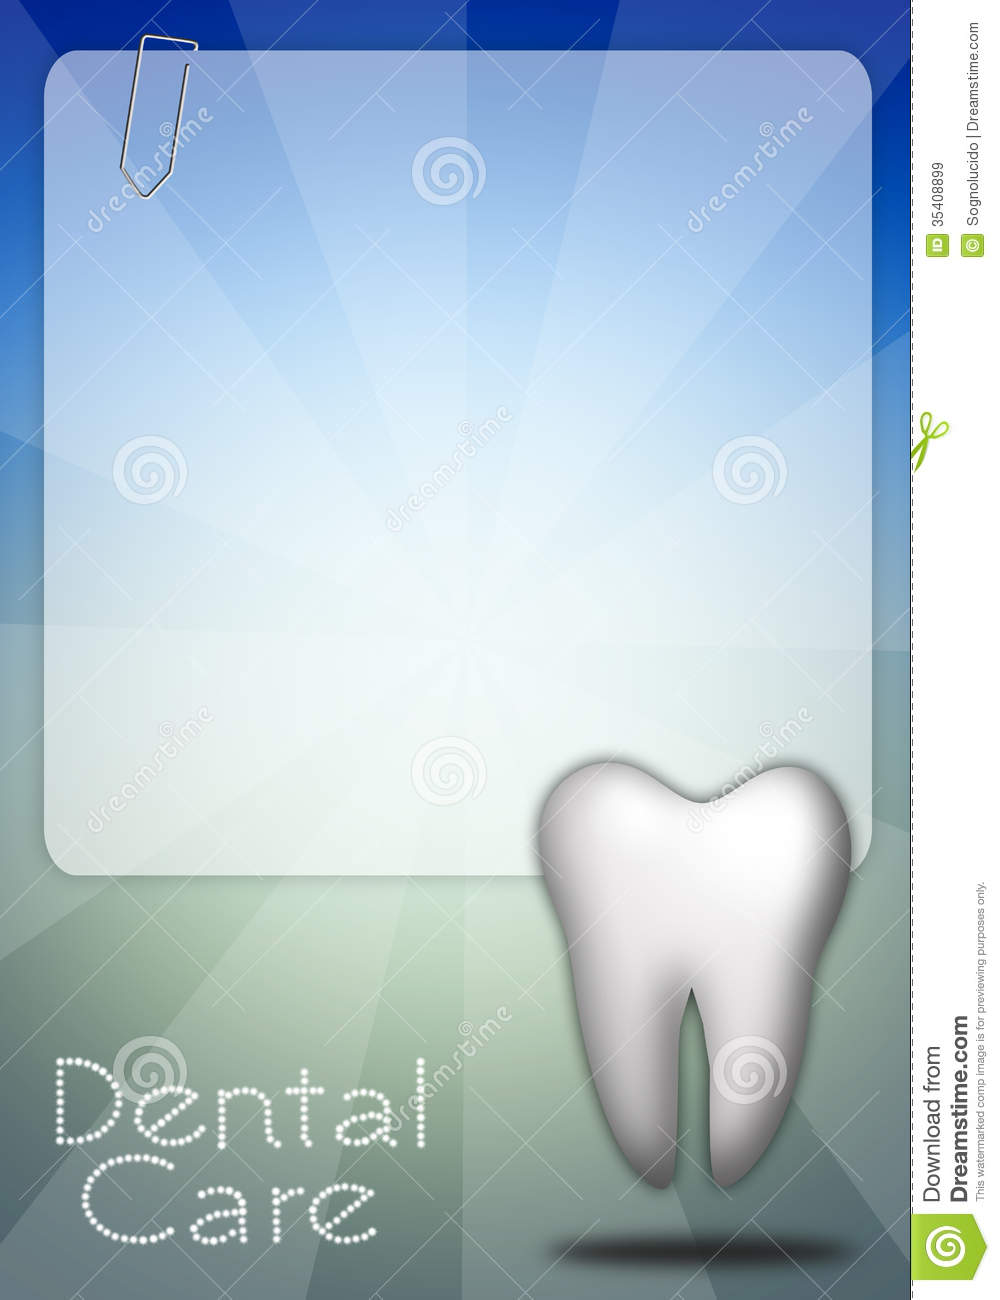 dental-care-illustration-background-tooth-35408899.jpg